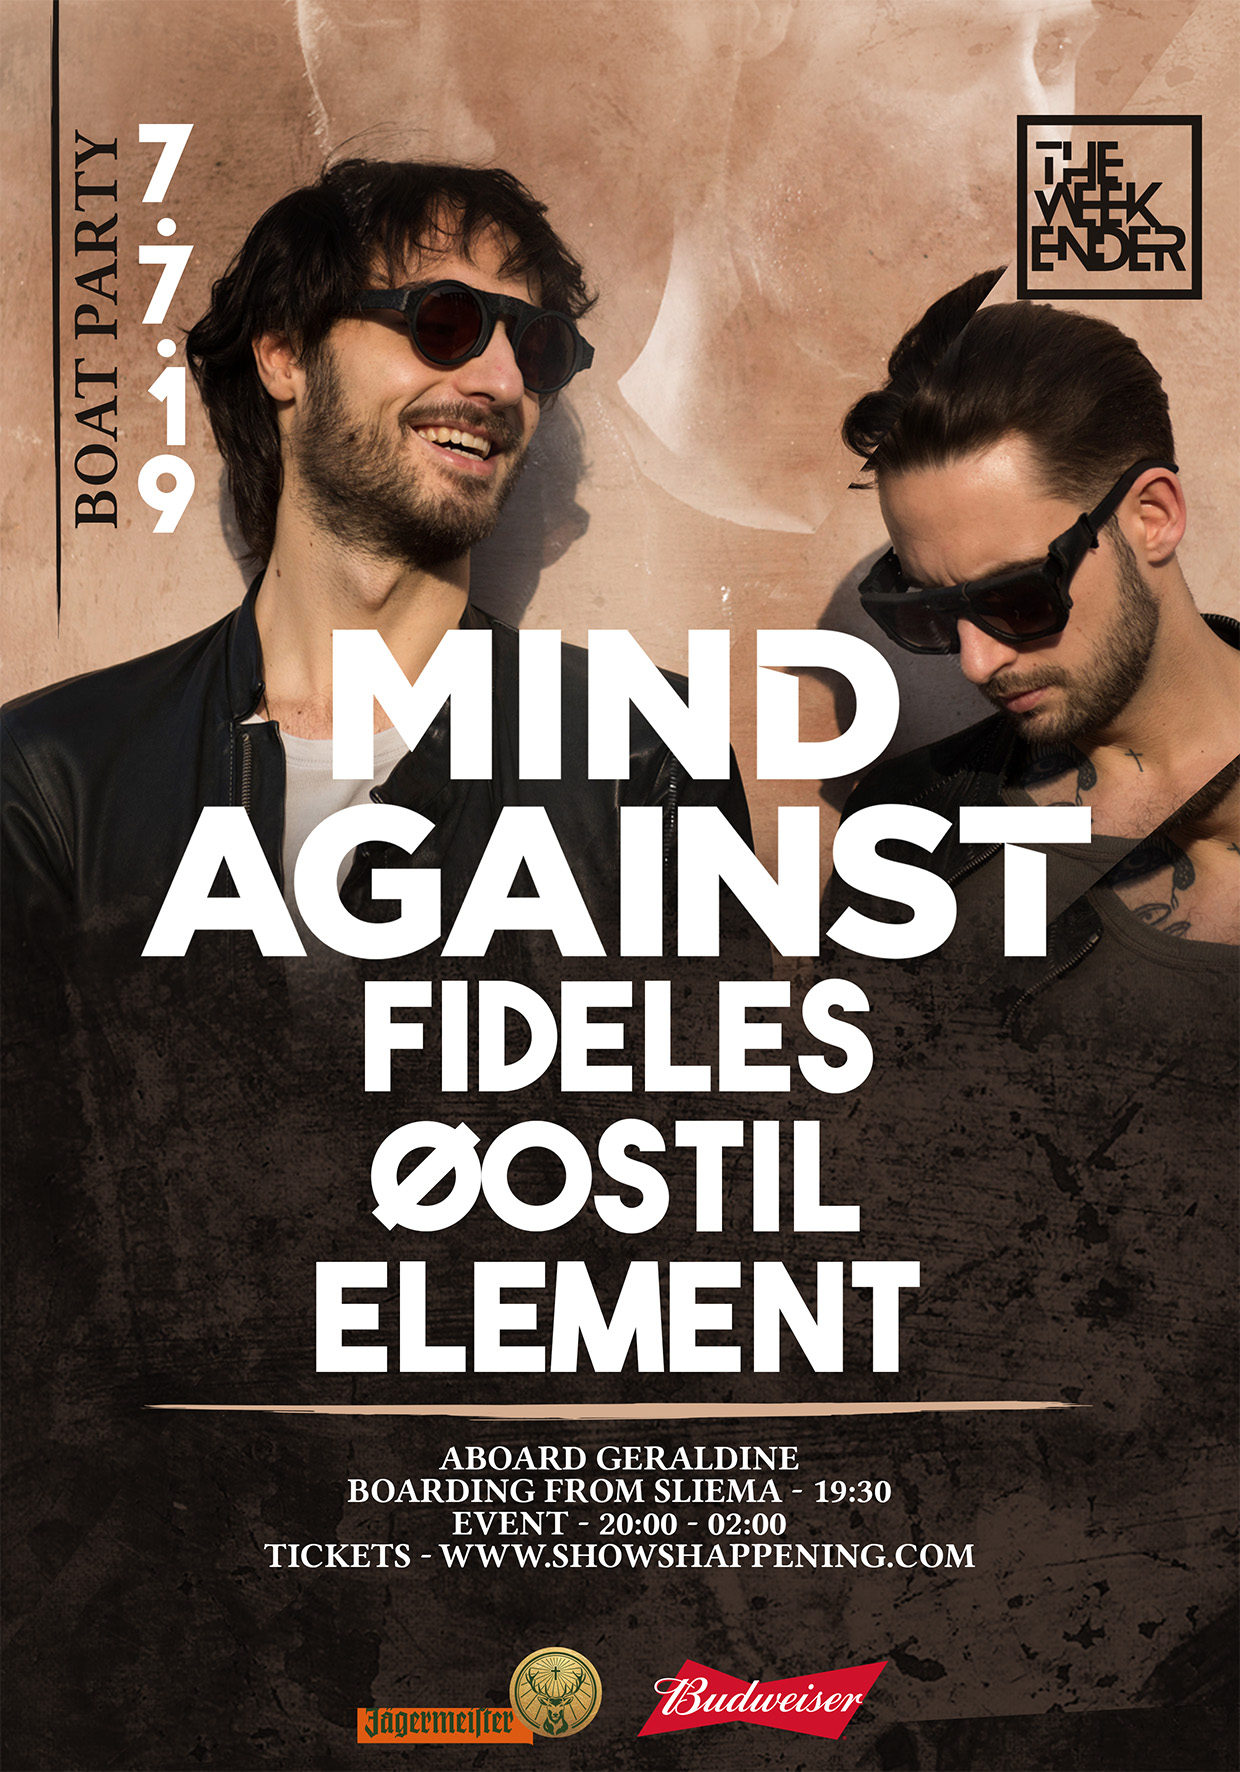 The Weekender Boat Party with Mind Against & Fideles flyer